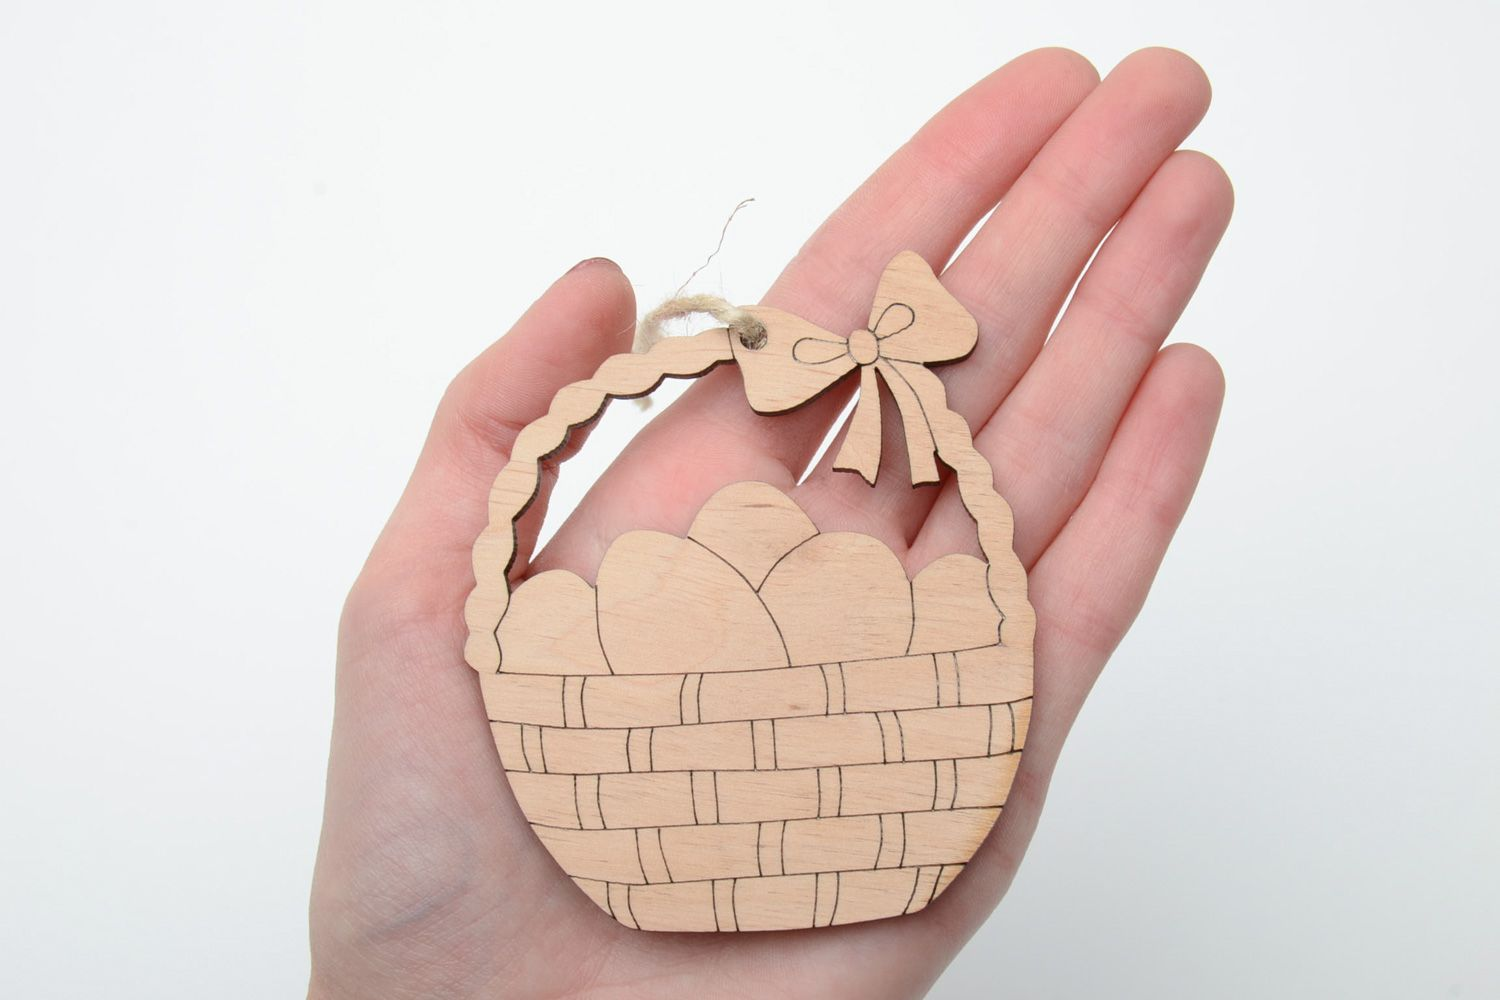 eggs for decoupage Handmade plywood blank interior pendant magnet for painting - MADEheart.com